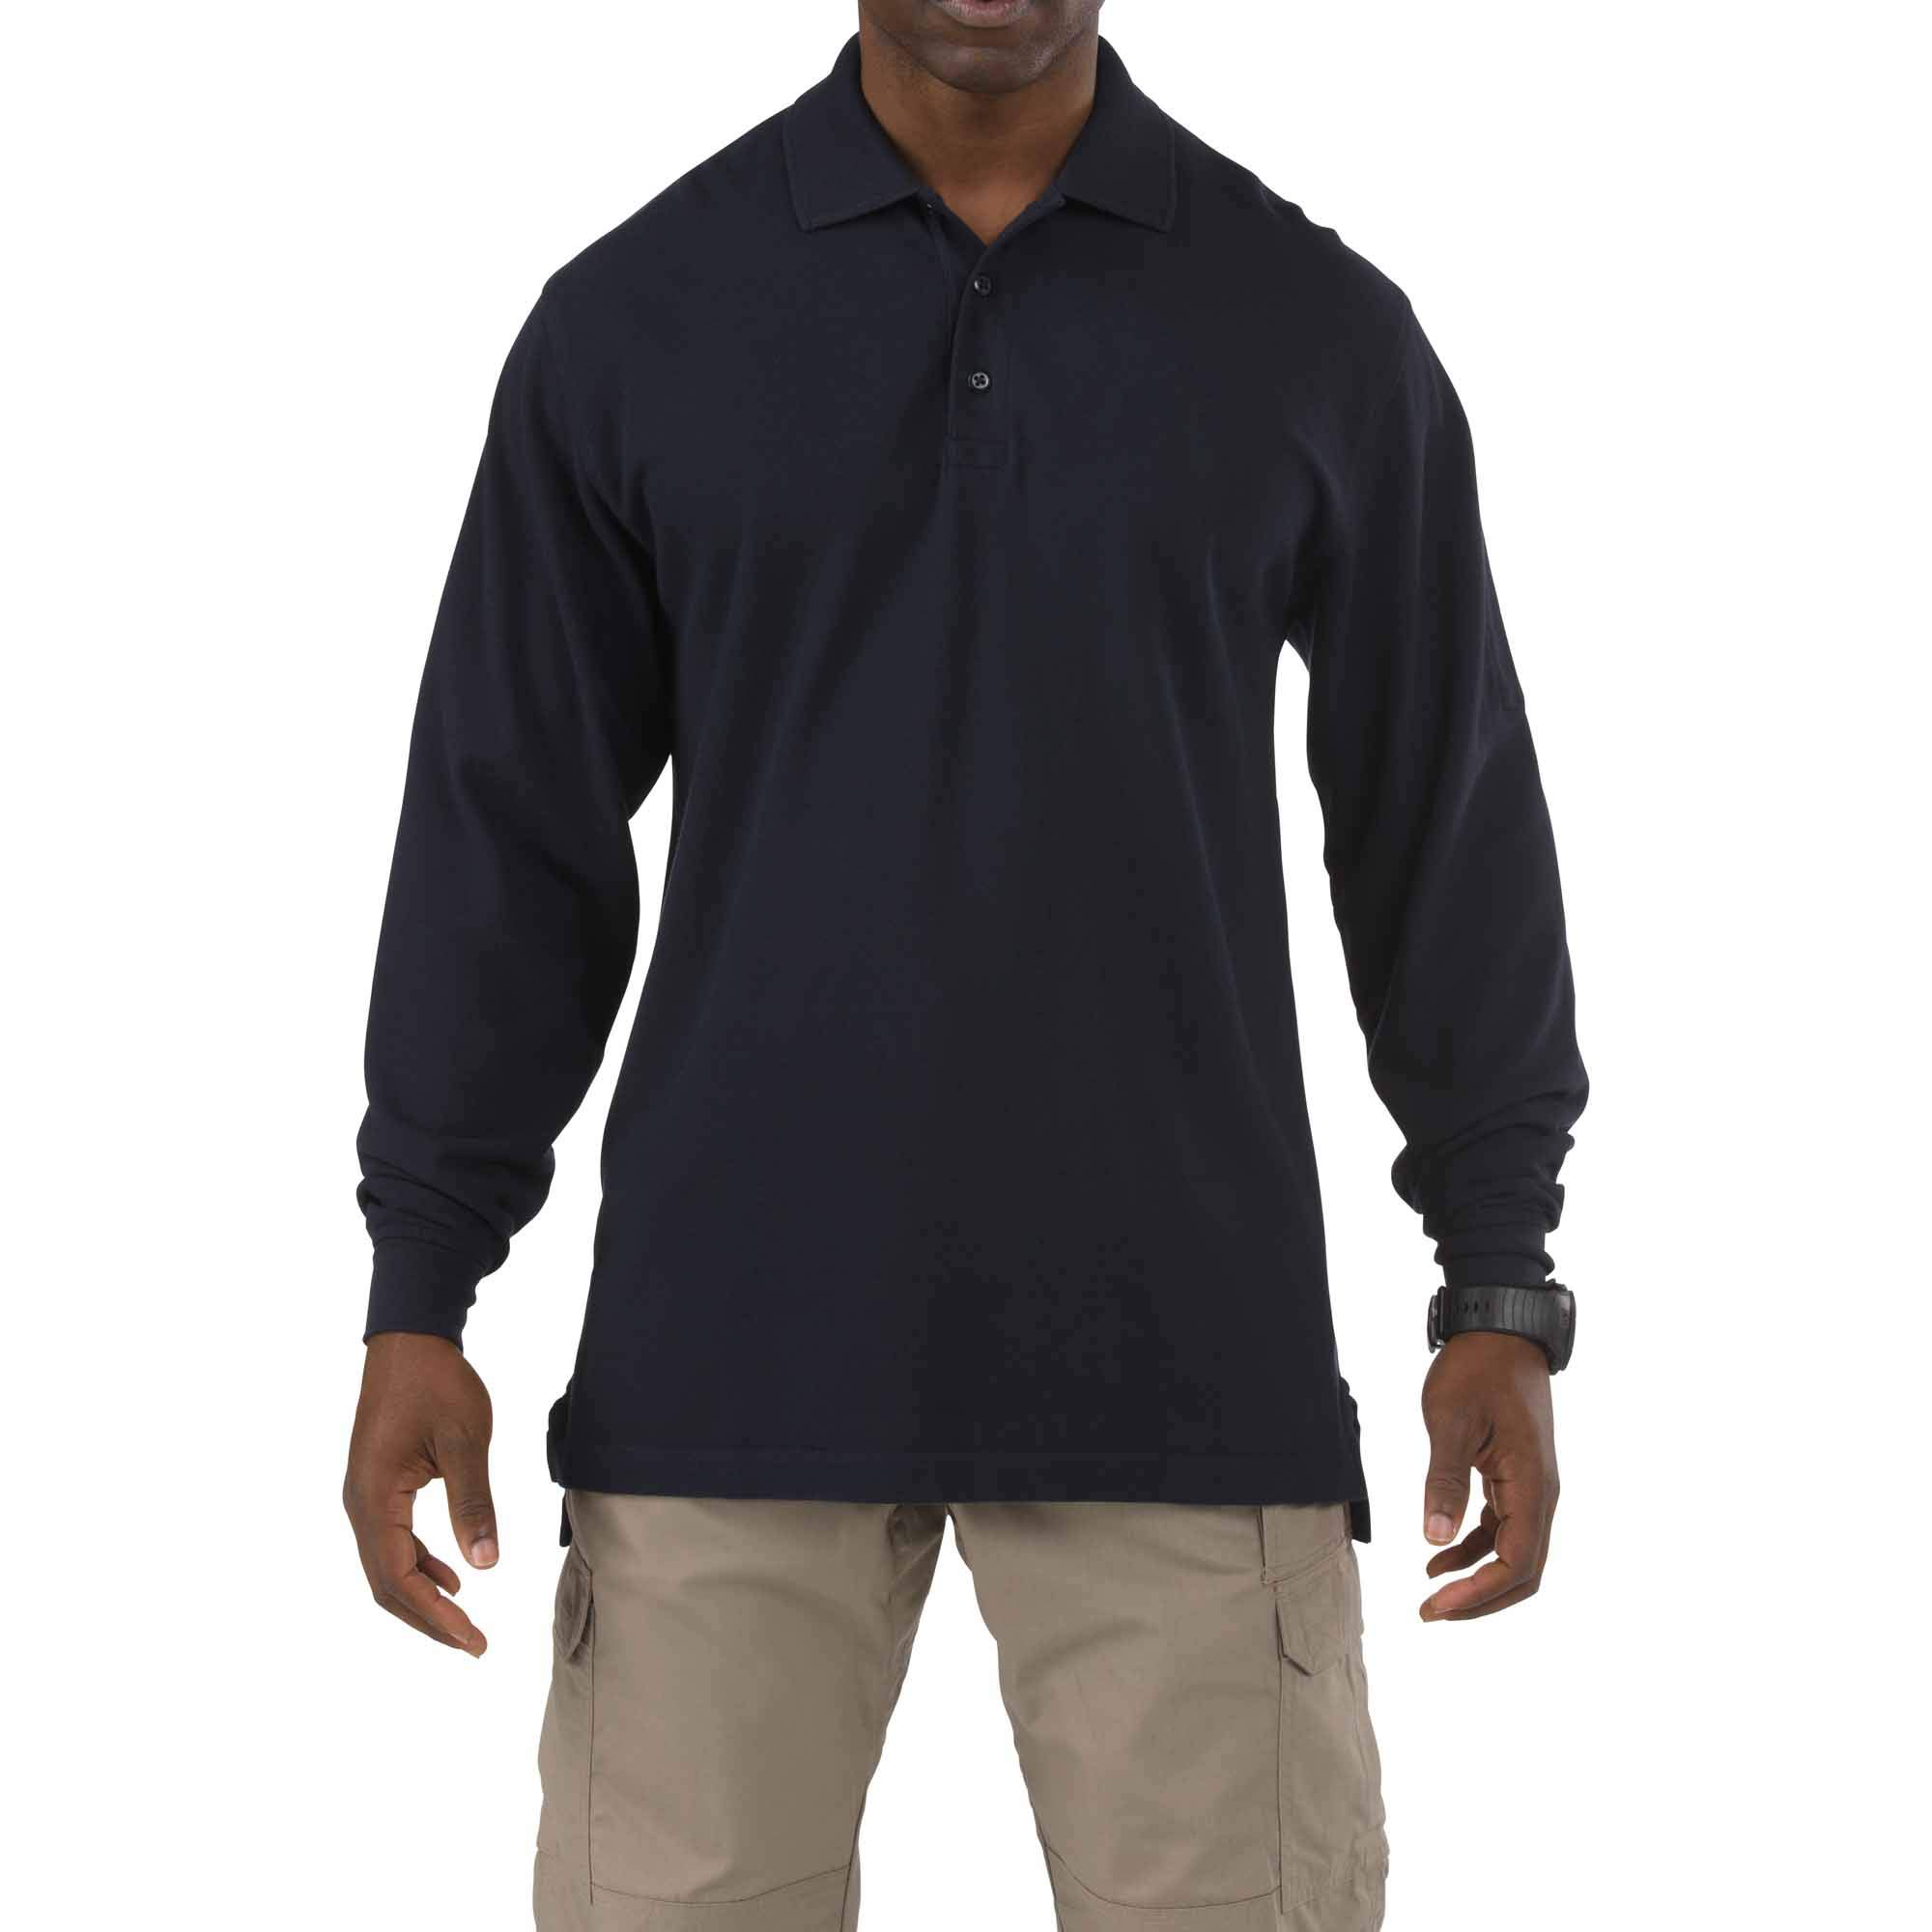 5.11 Tactical #42056T Long Sleeve Tall Professional Polo Shirt (Dark Navy, Large) by 5.11